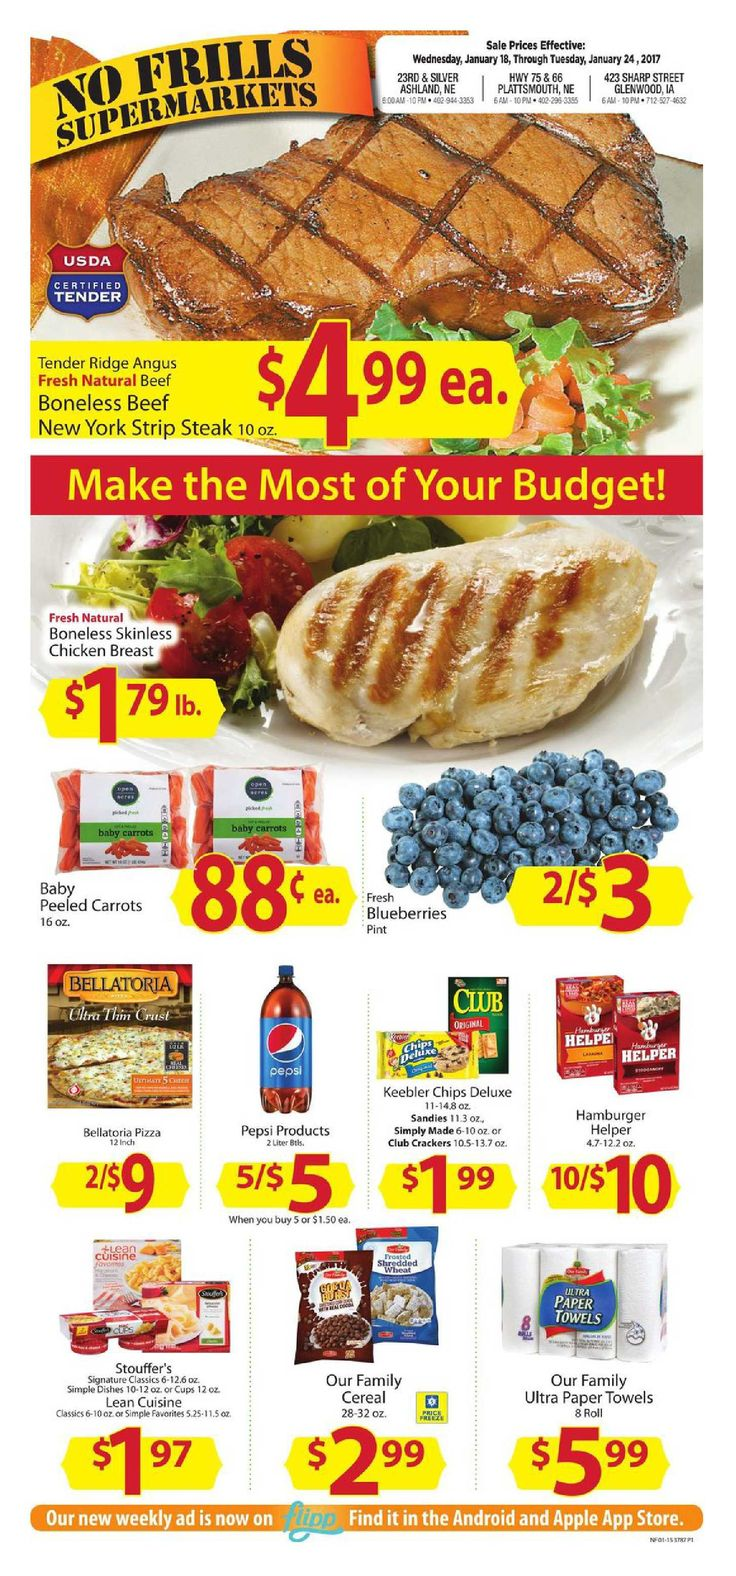 No Frills Weekly Ad January 18 - 24, 2017 - http://www.olcatalog.com/grocery/no-frills-weekly-ad.html